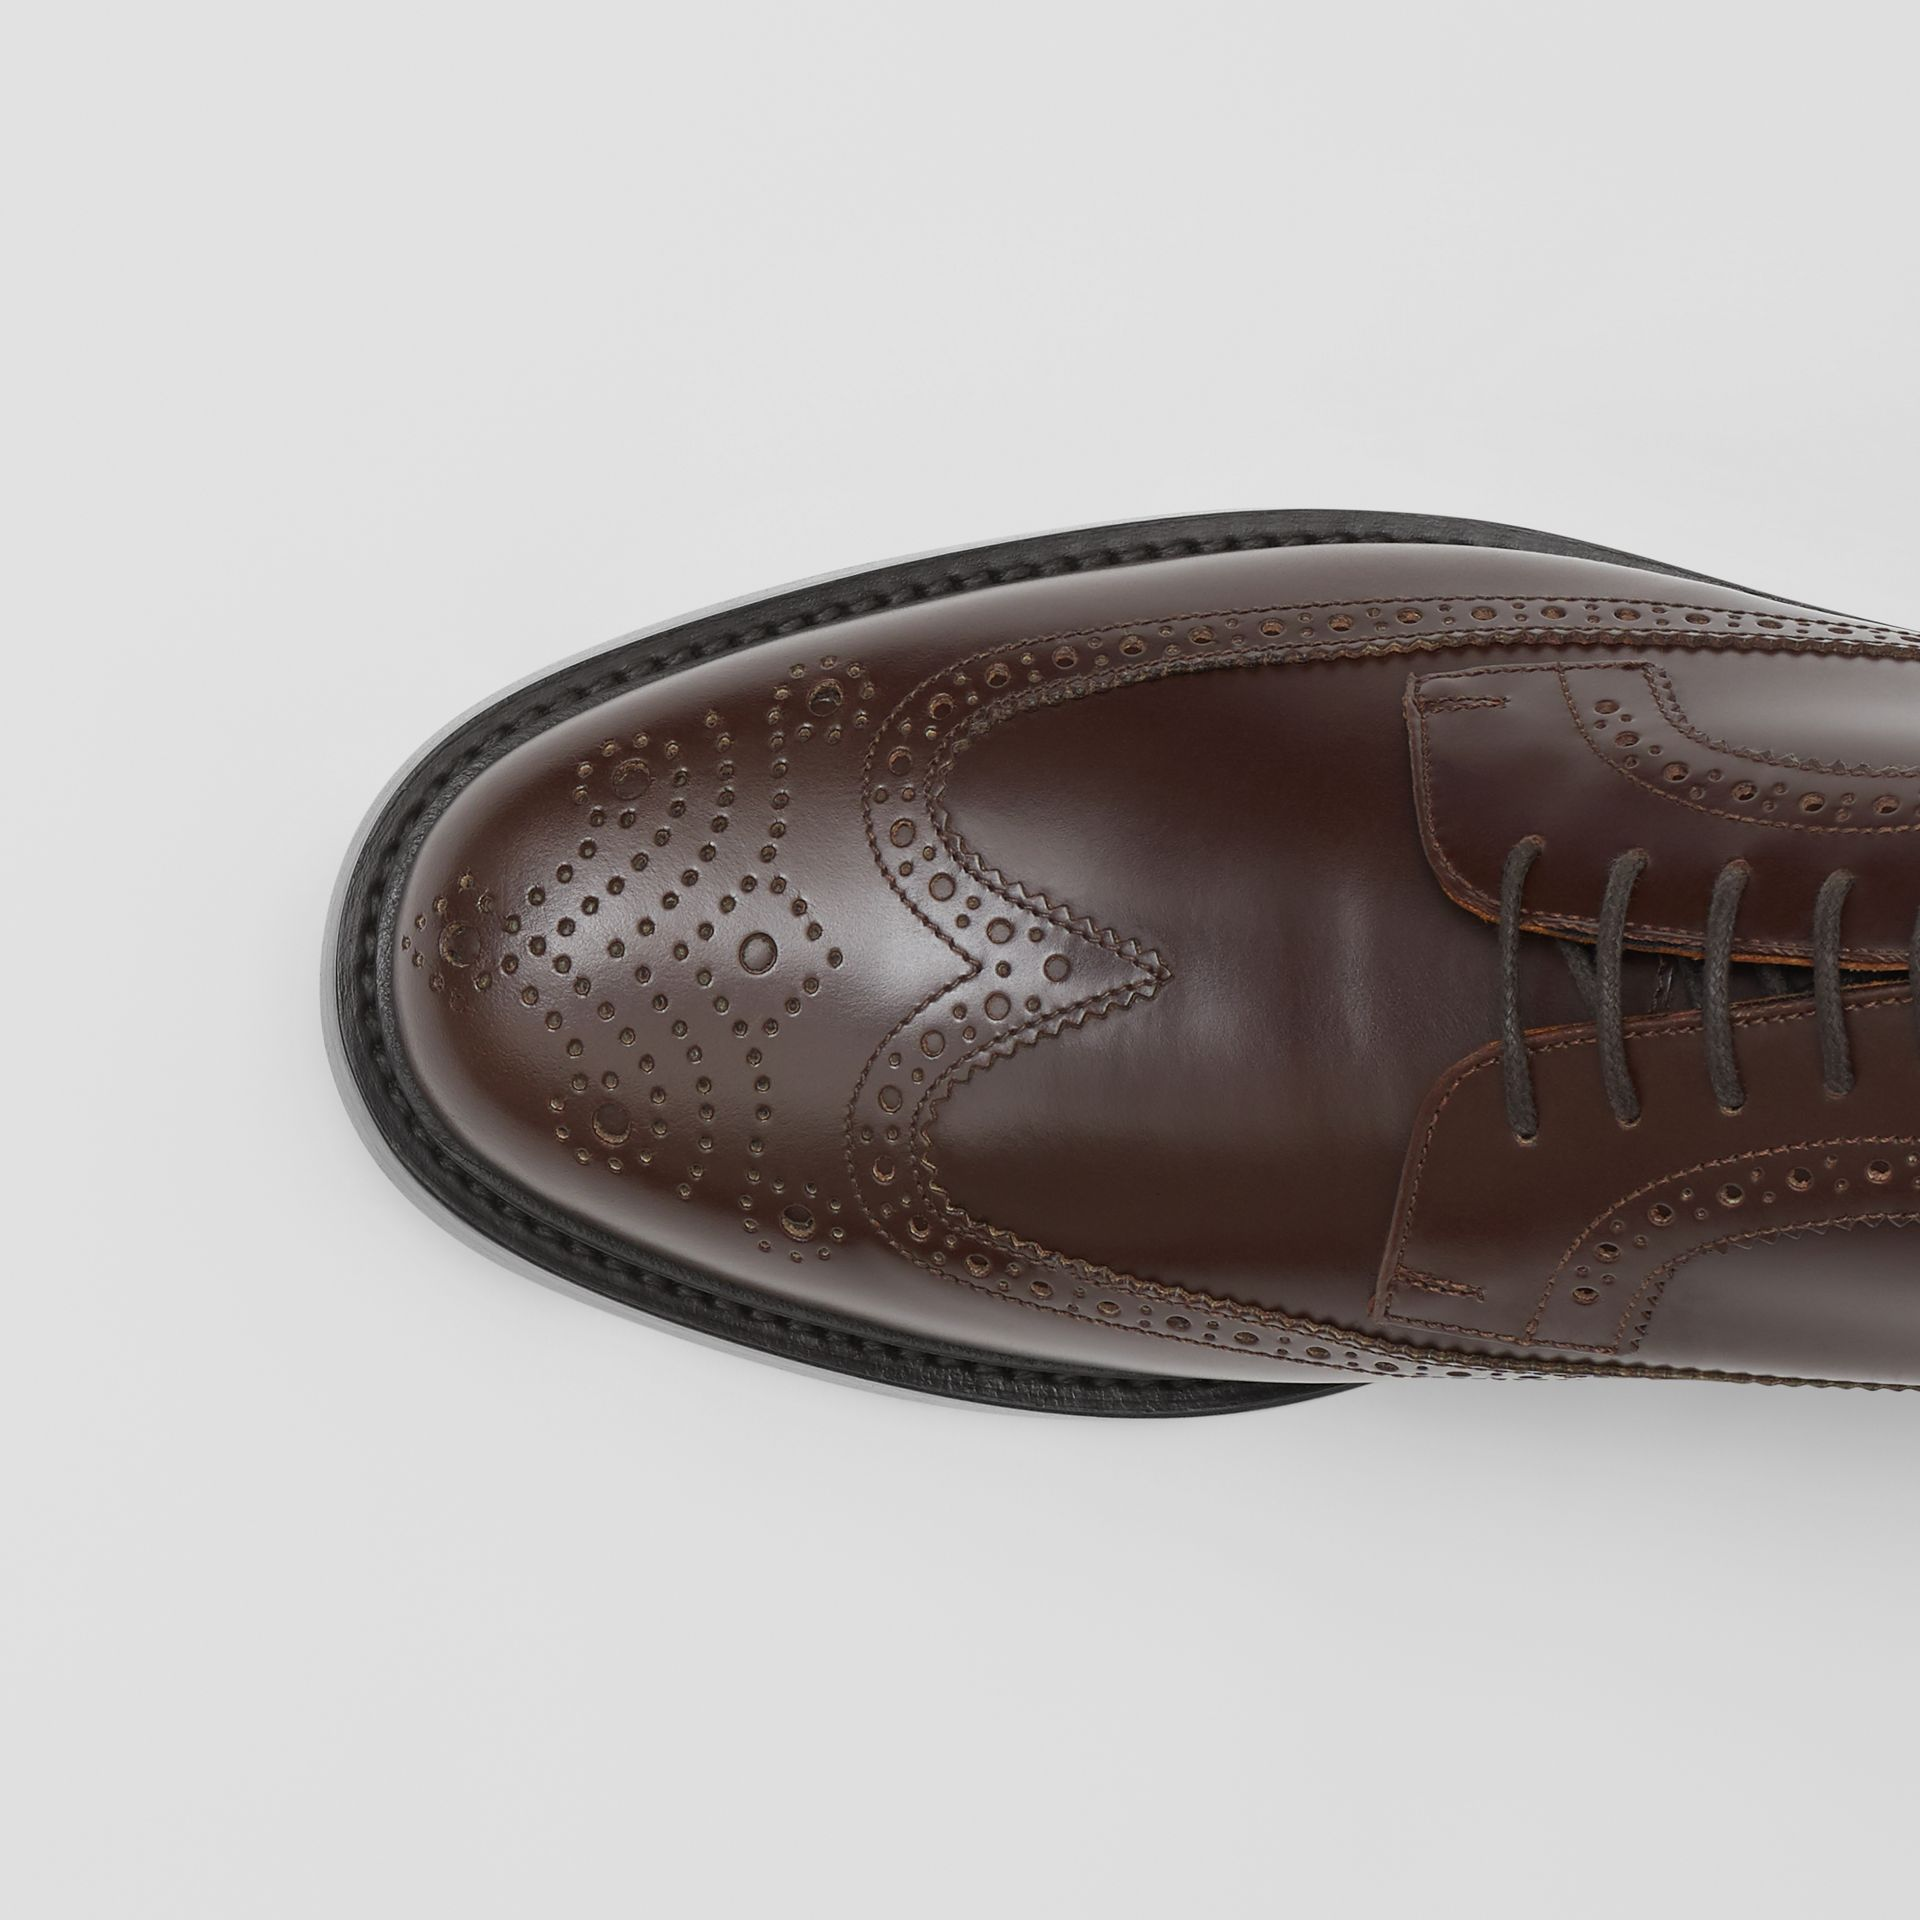 Brogue Detail Leather Derby Shoes in Tan - Men | Burberry - gallery image 1